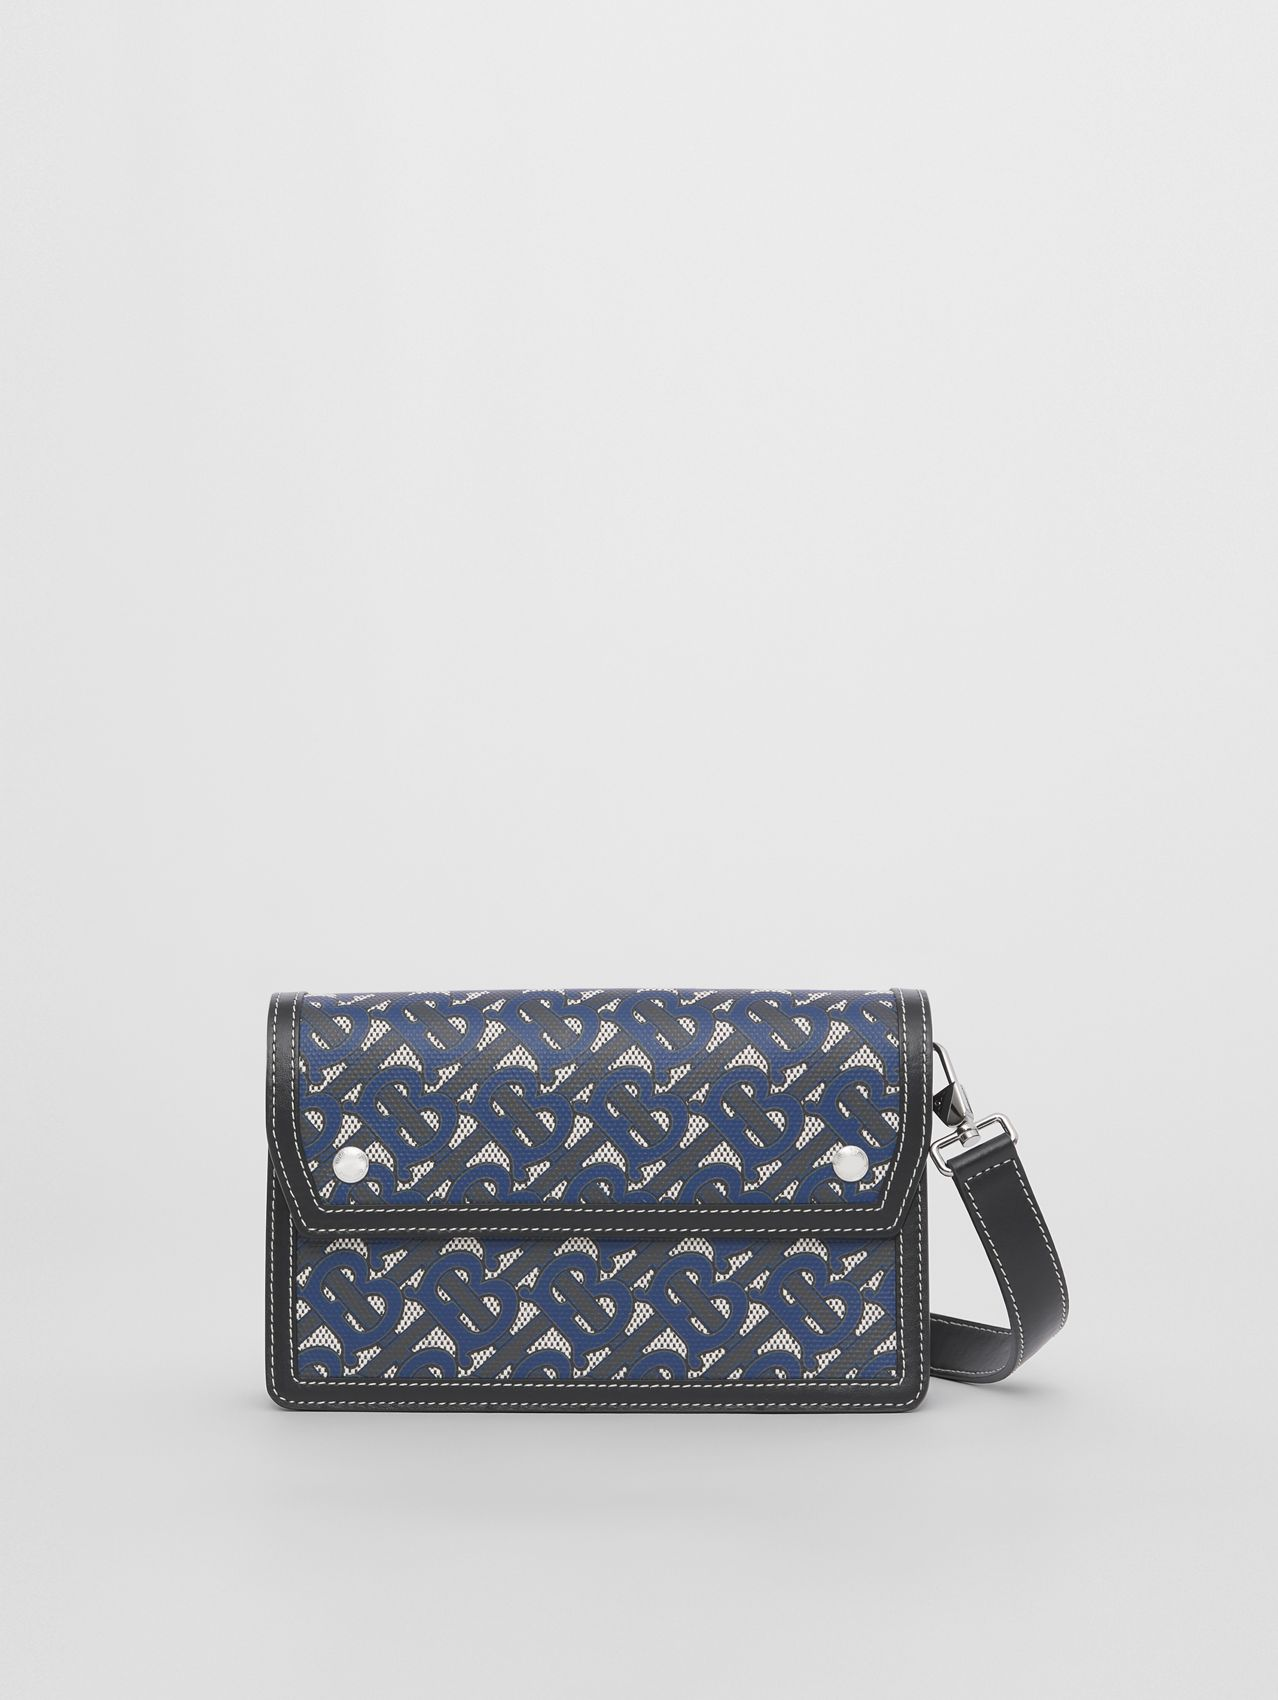 Monogram Print Canvas and Leather Crossbody Bag in Ink Blue